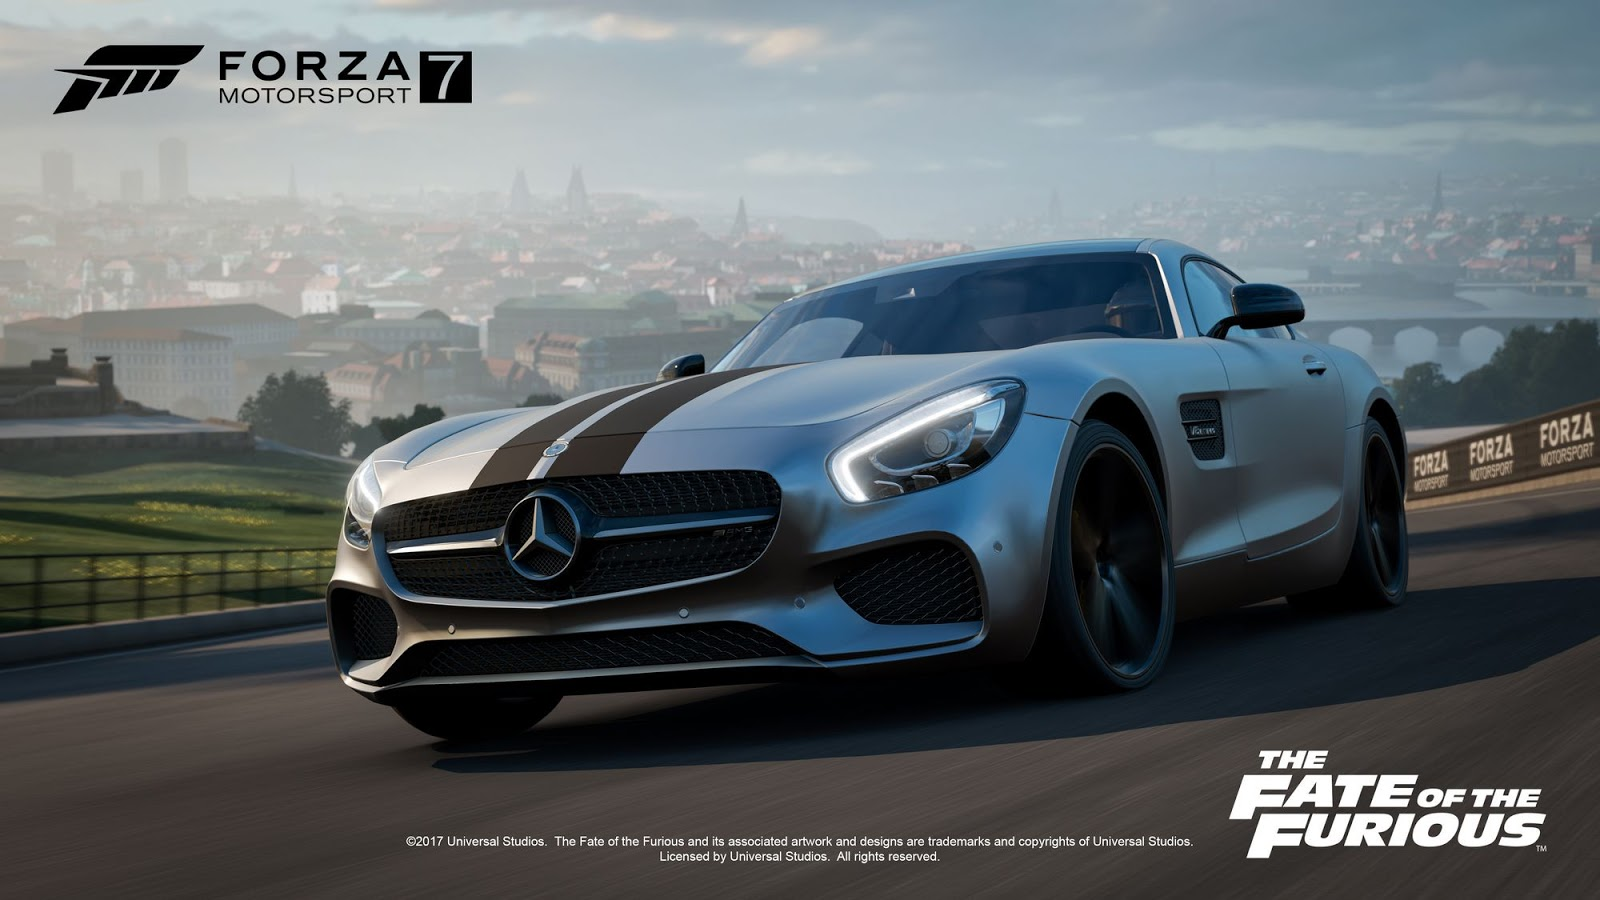 Car Drifting Wallpaper Hd 1080p Forza Motorsport 7 Welcomes The Fate Of The Furious Car